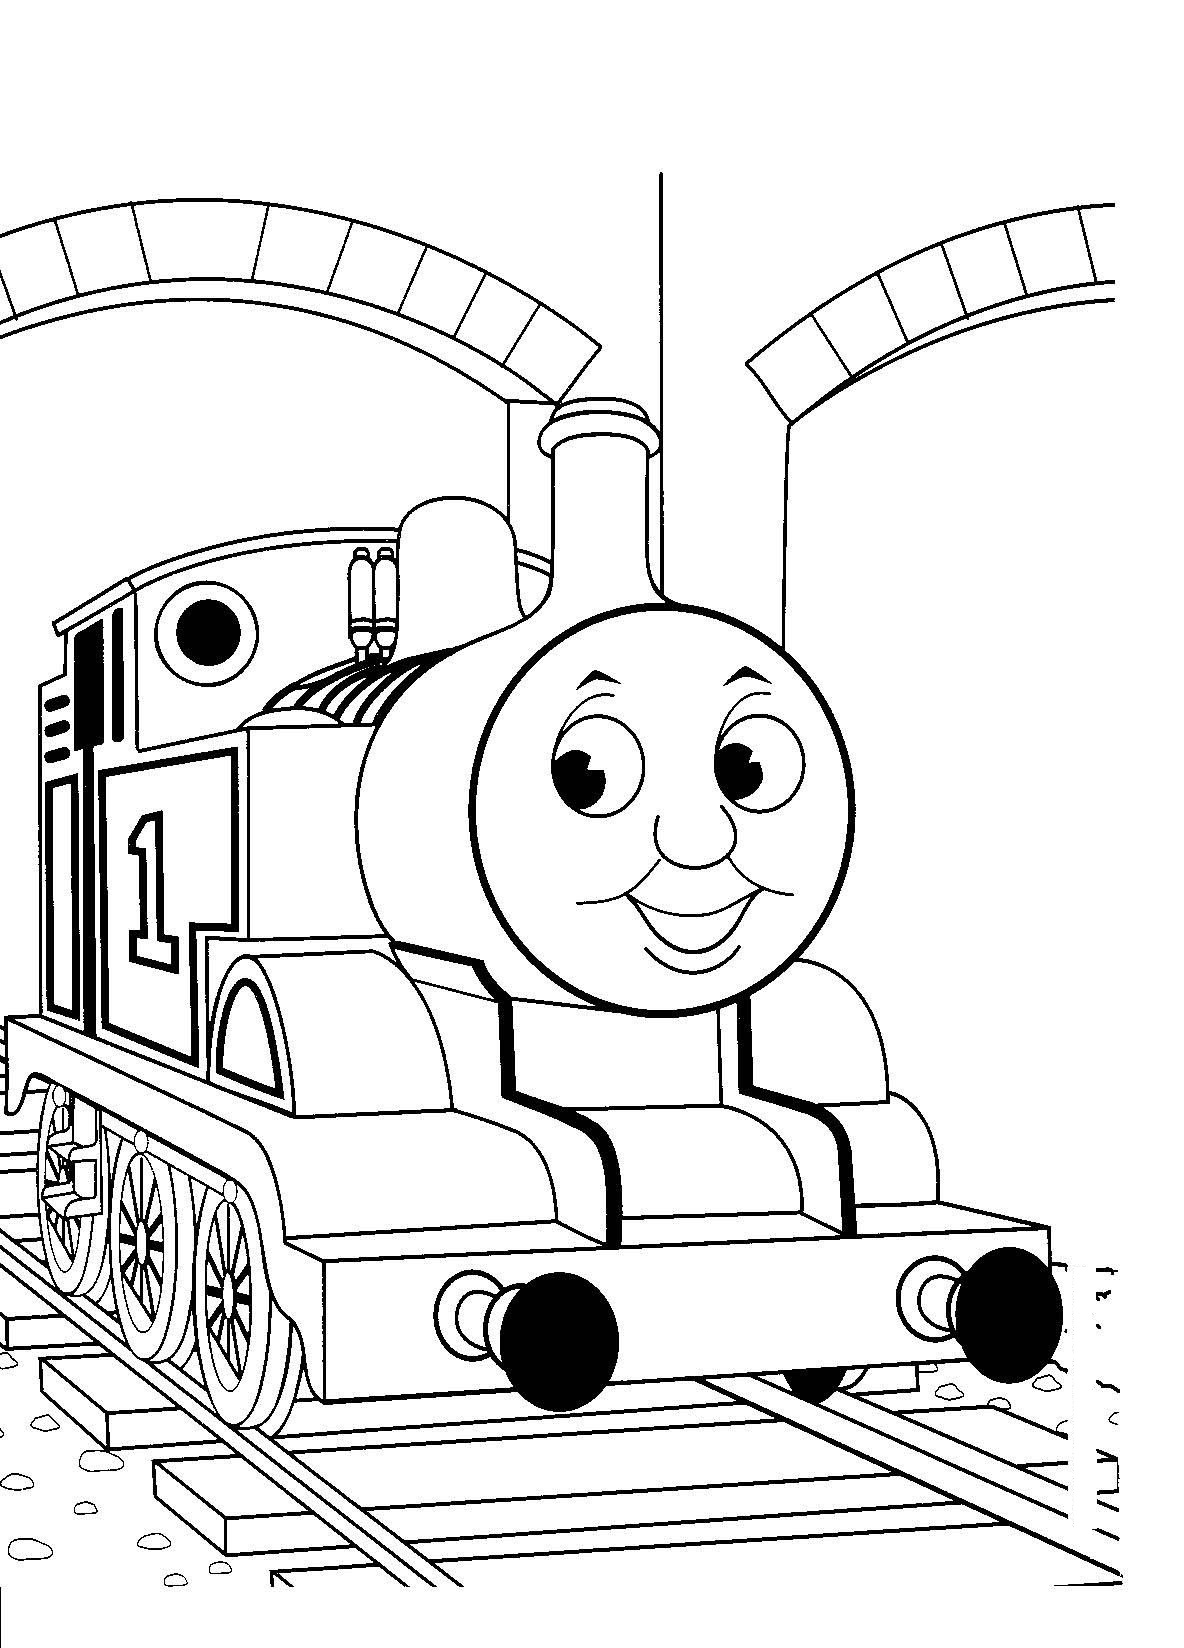 free printable thomas the train coloring pages - Colouring Pages To Print